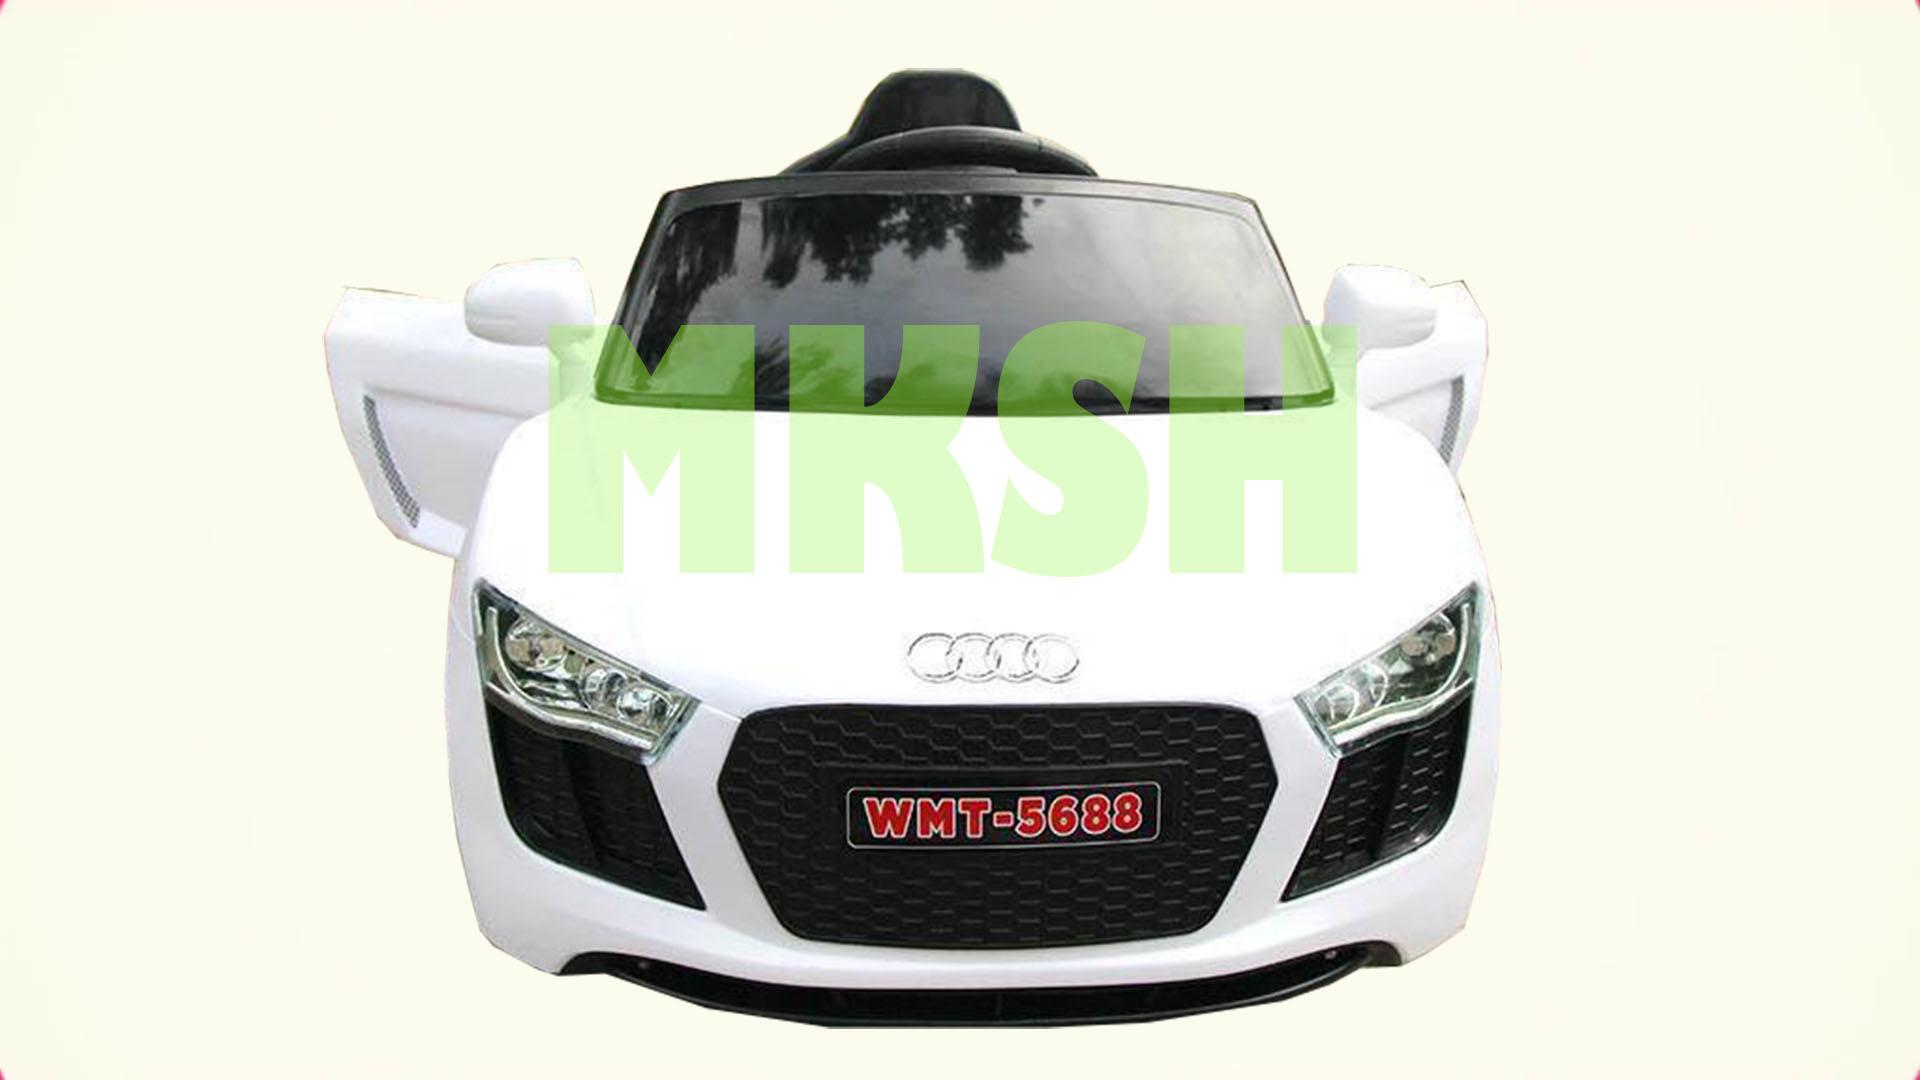 Ride On Toys For Sale Kids Ride Ons Online Brands Prices